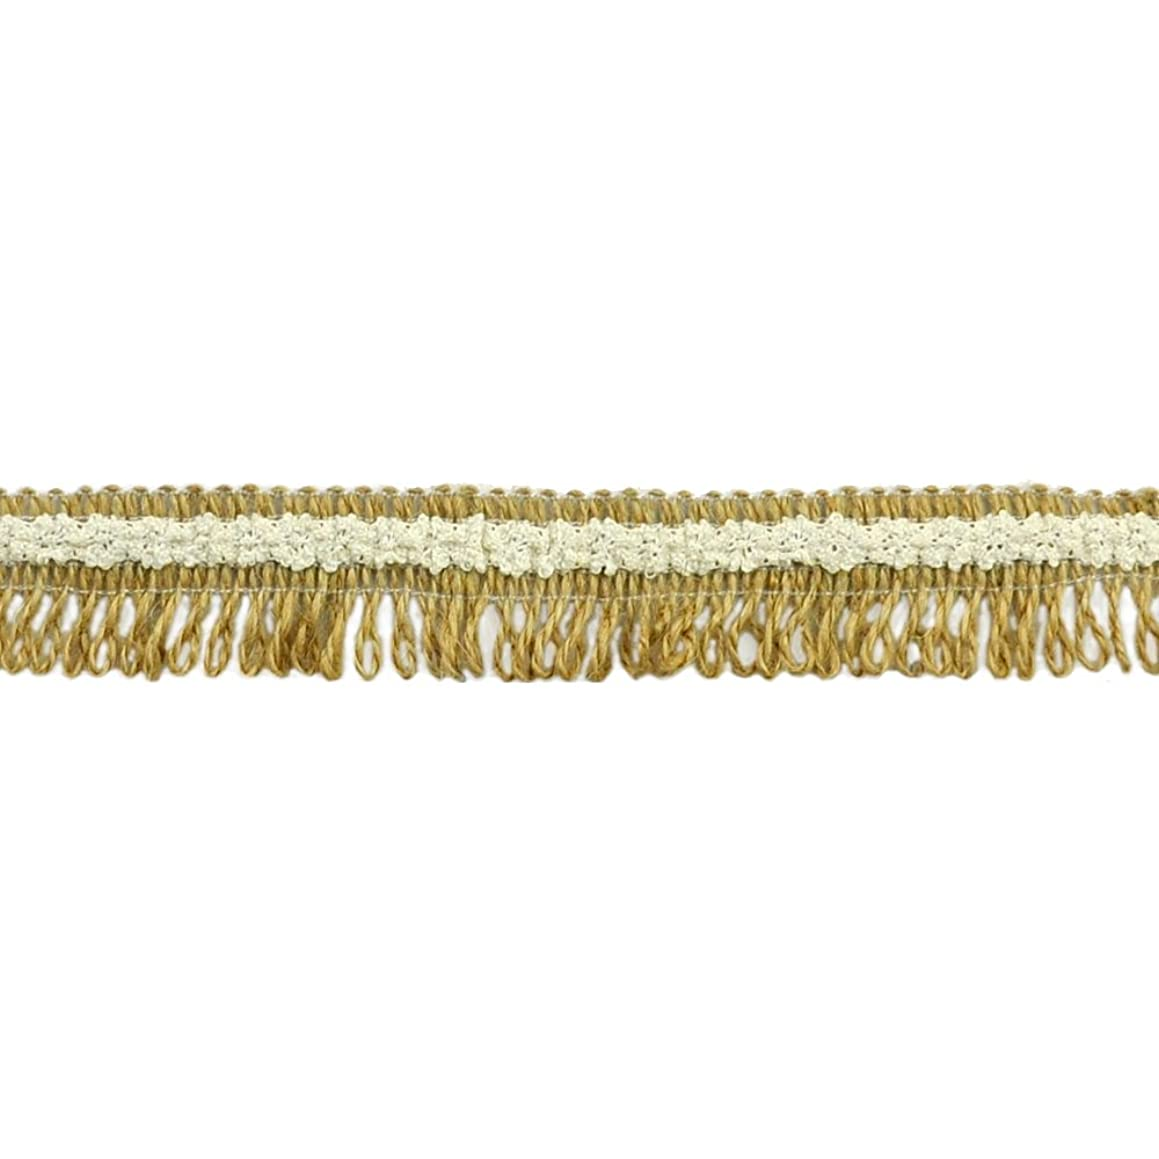 BELAGIO Enterprises BF-1617 Burlap Lace Loop Fringe Trim